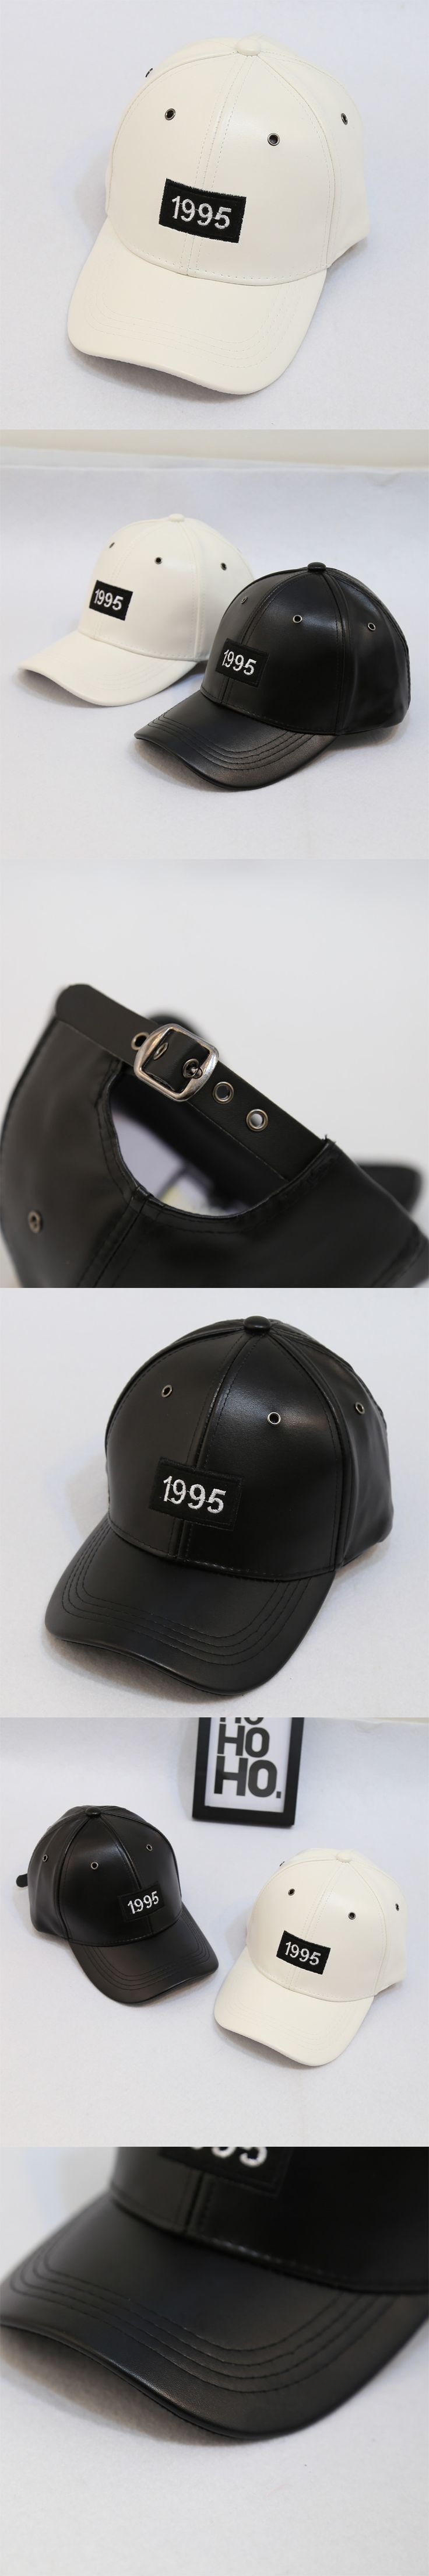 Cool Fashion 1995 Patch Man Hiphop Baseball Cap Leather Adjustable Casquette Sporting Motorcycle Cap Outdoor Curved Canopies Hat